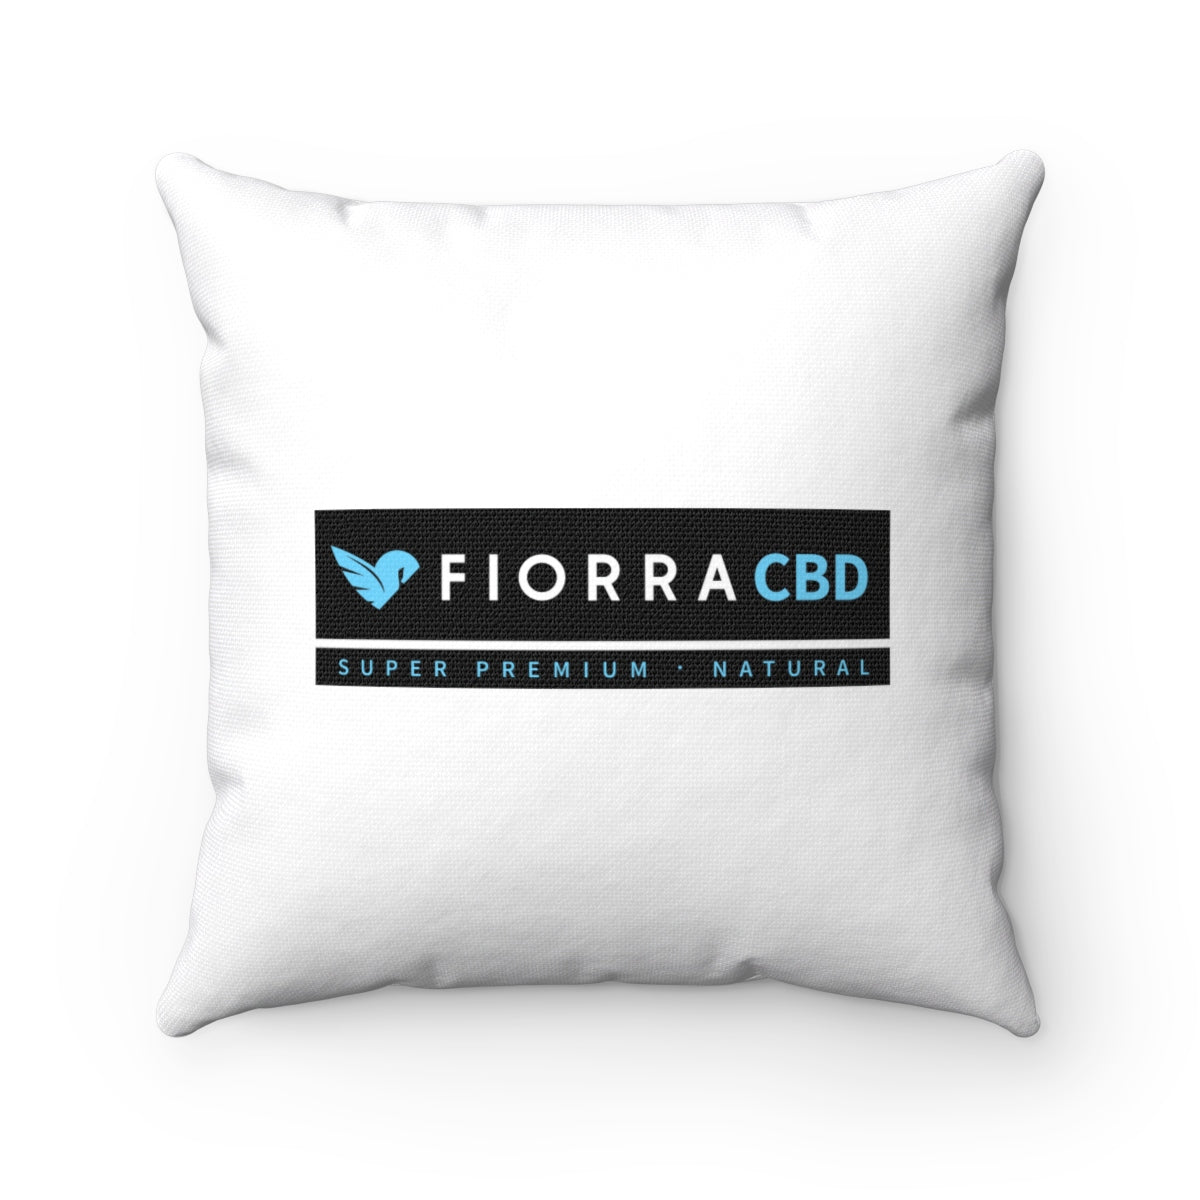 FIORA CBD Spun Polyester Square Pillow